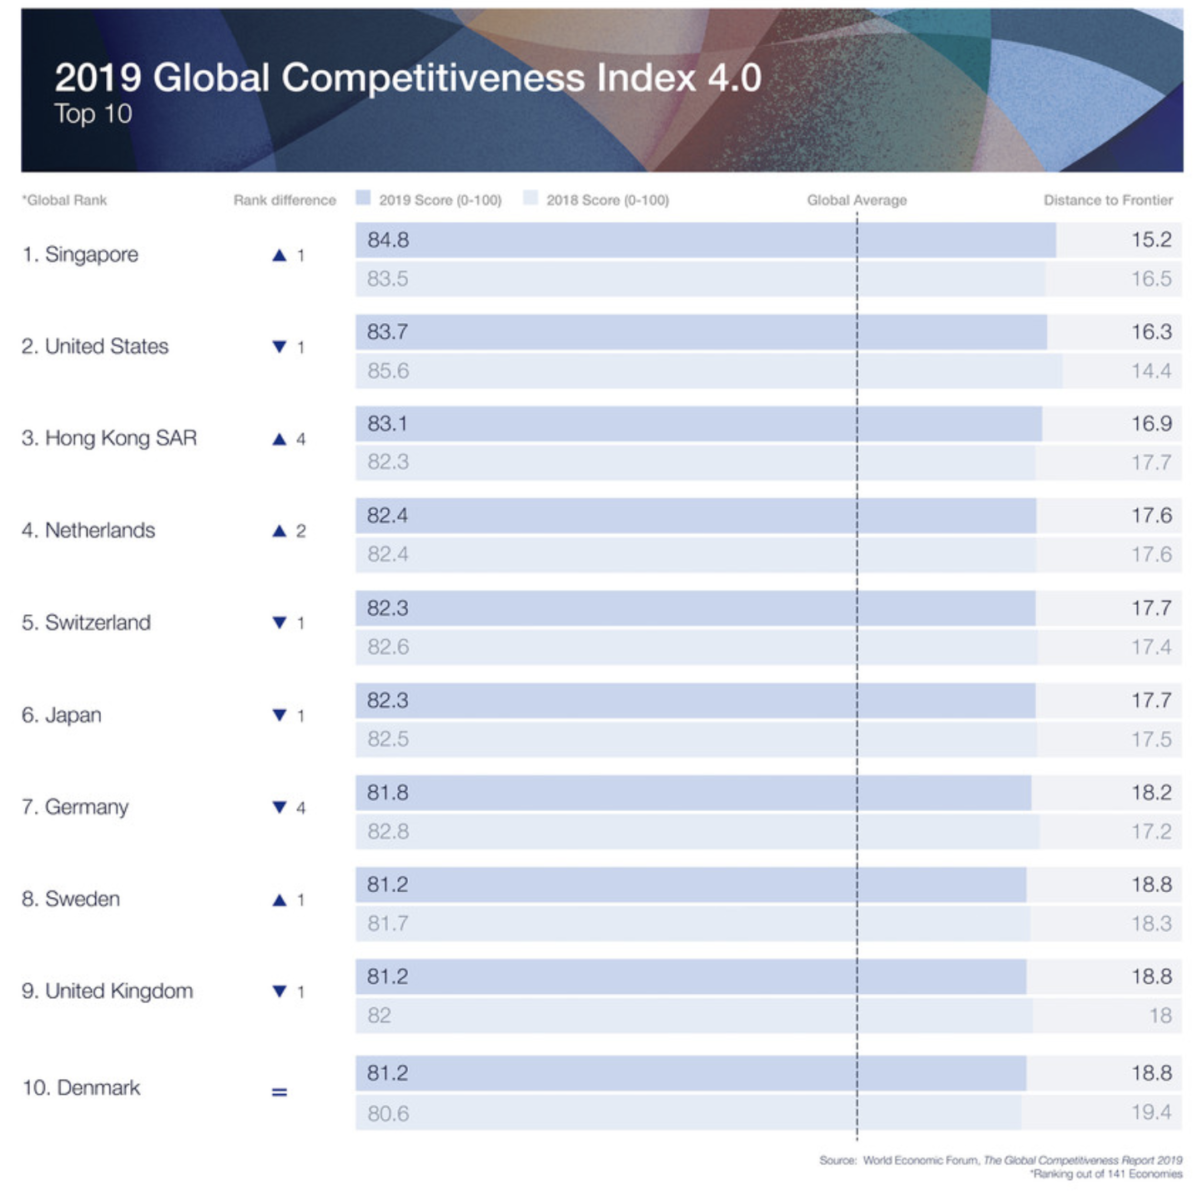 10 most competitive economies in 2019